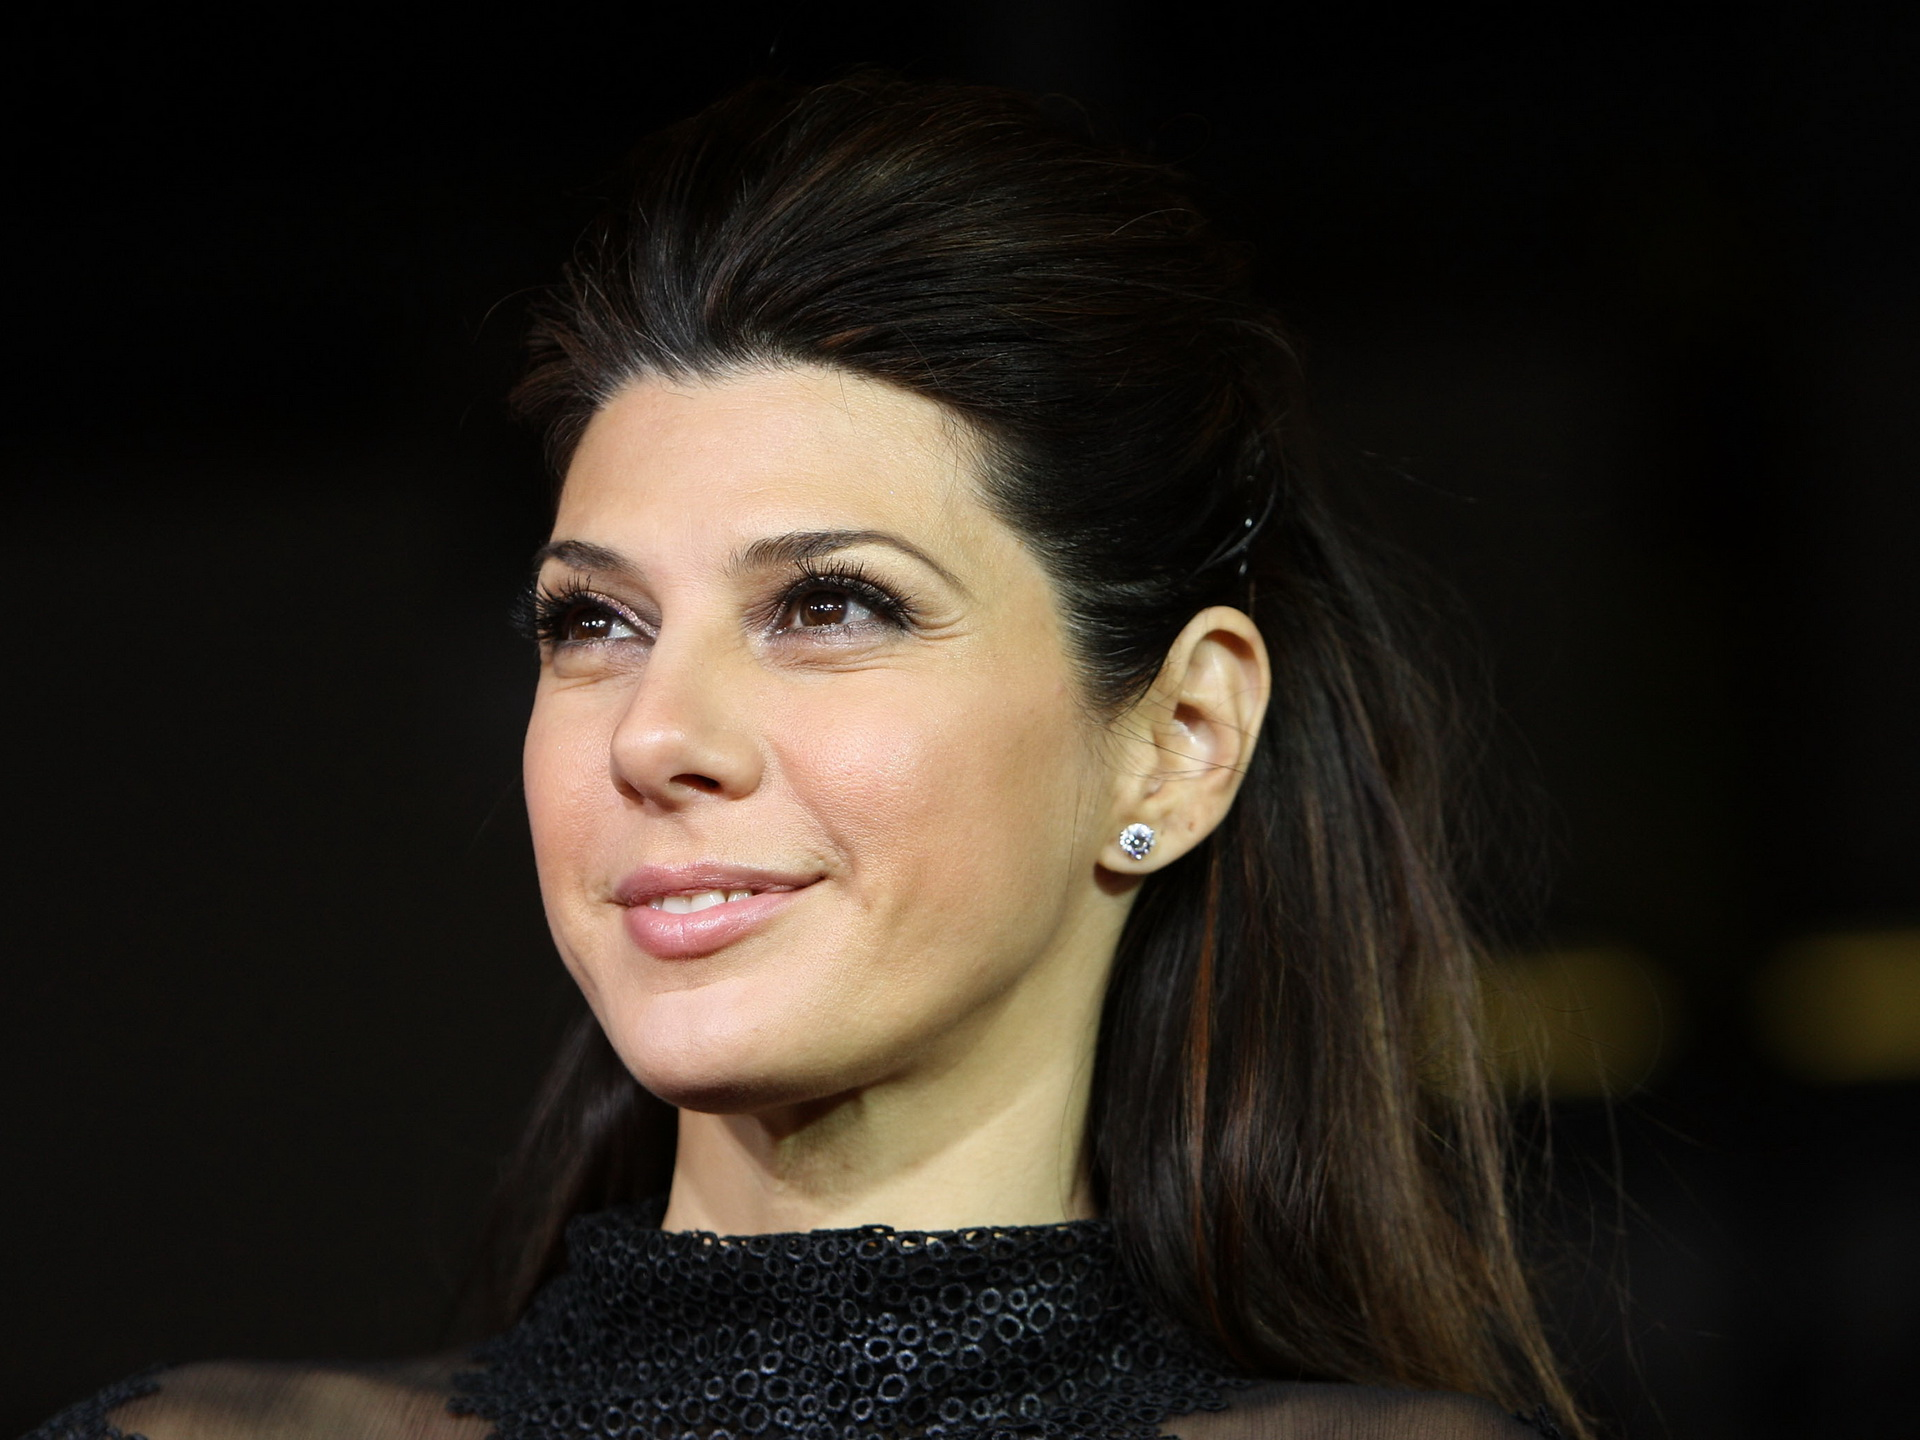 marisa tomei seinfeldmarisa tomei 2016, marisa tomei 2017, marisa tomei seinfeld, marisa tomei 2015, marisa tomei four rooms, marisa tomei filmography, marisa tomei movies, marisa tomei toxic avenger, marisa tomei imdb, marisa tomei films, marisa tomei only you, marisa tomei zimbio, marisa tomei site, marisa tomei 1995, marisa tomei instagram, marisa tomei wdw, marisa tomei 1992, marisa tomei workout, marisa tomei alltimers, marisa tomei best movies